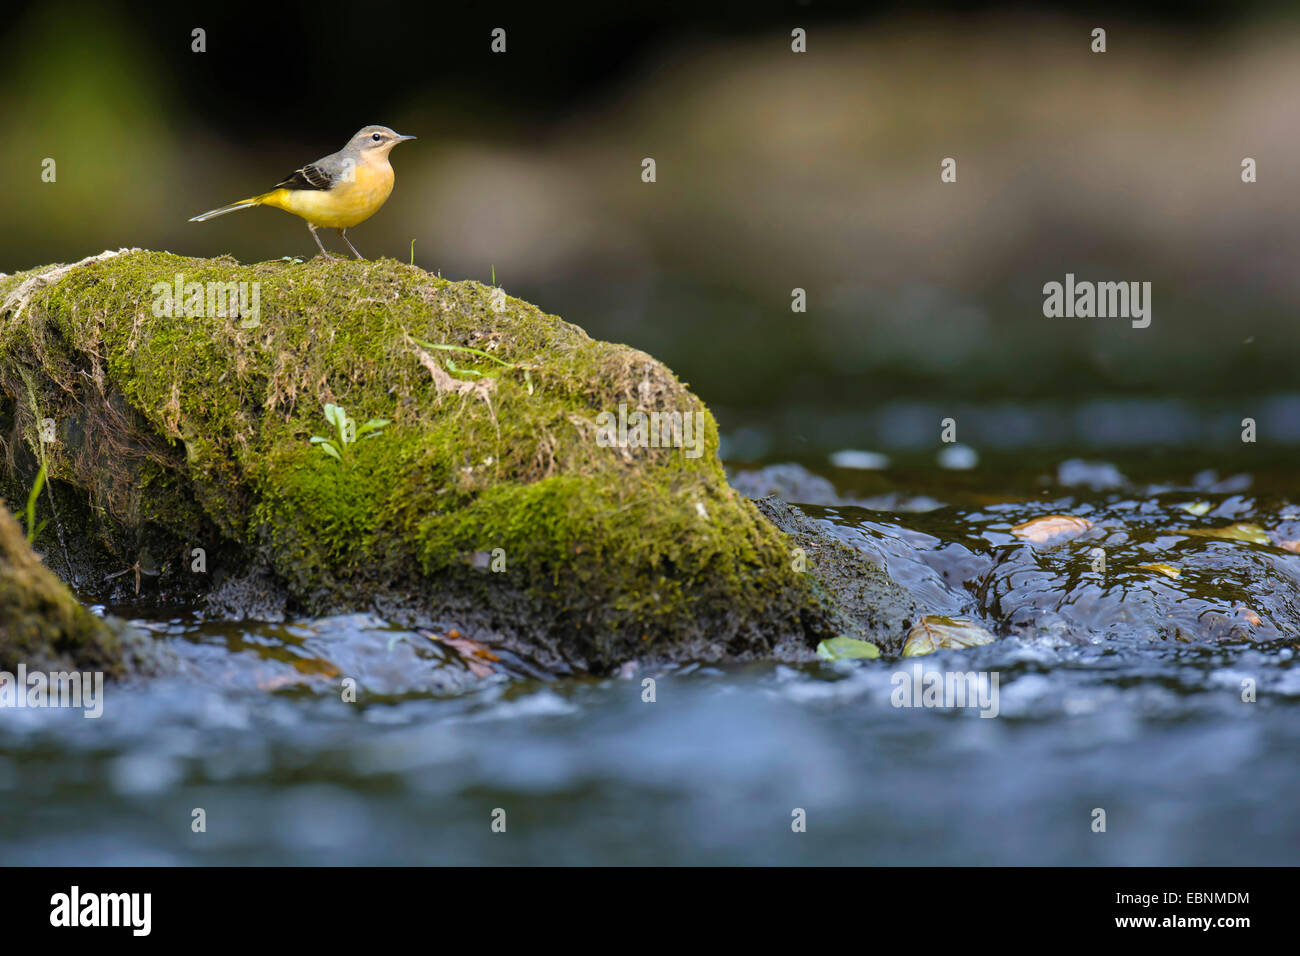 grey wagtail (Motacilla cinerea), on a mossy stone at a stretch of water, Germany, Rhineland-Palatinate, Sieg - Stock Image